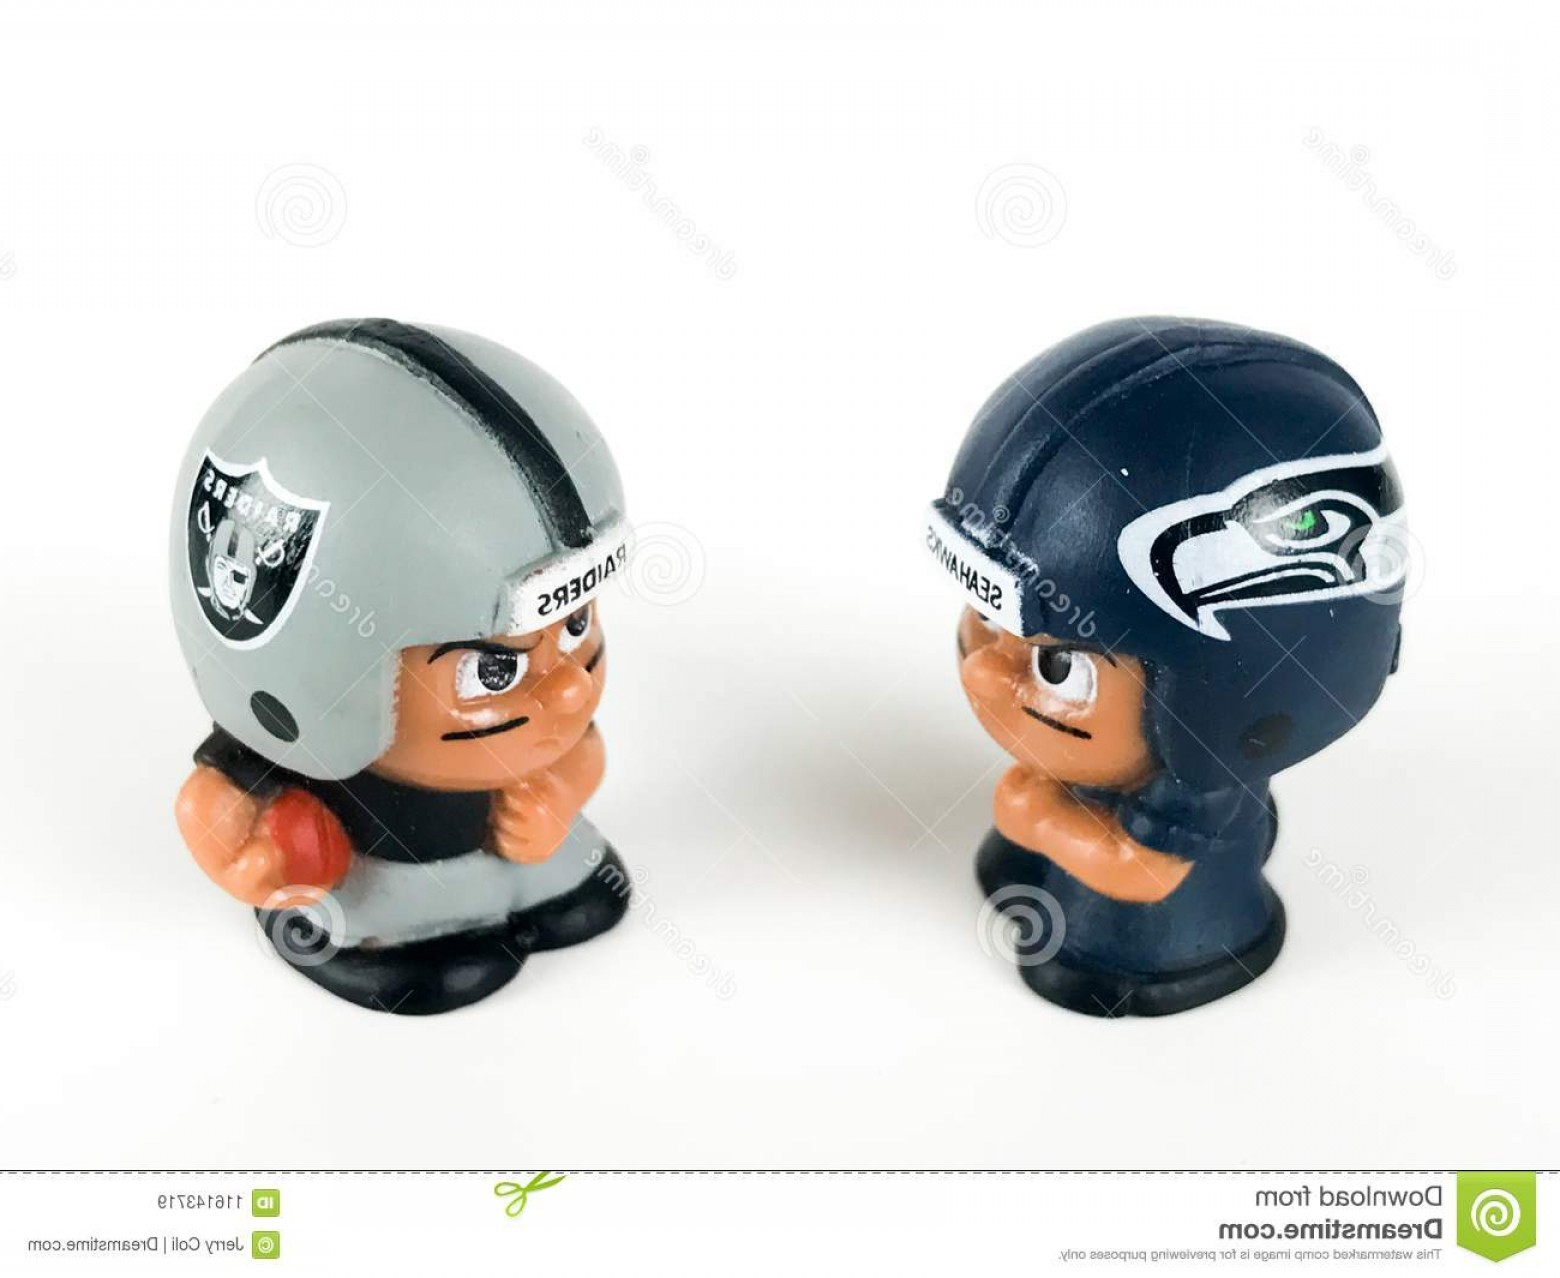 Seahawks Helmet Vector: Seattle Seahawks V Oakland Raiders Li L Teammates Toy Figure Seattle Seahawks V Oakland Raiders Li L Teammates Toy Figure Image